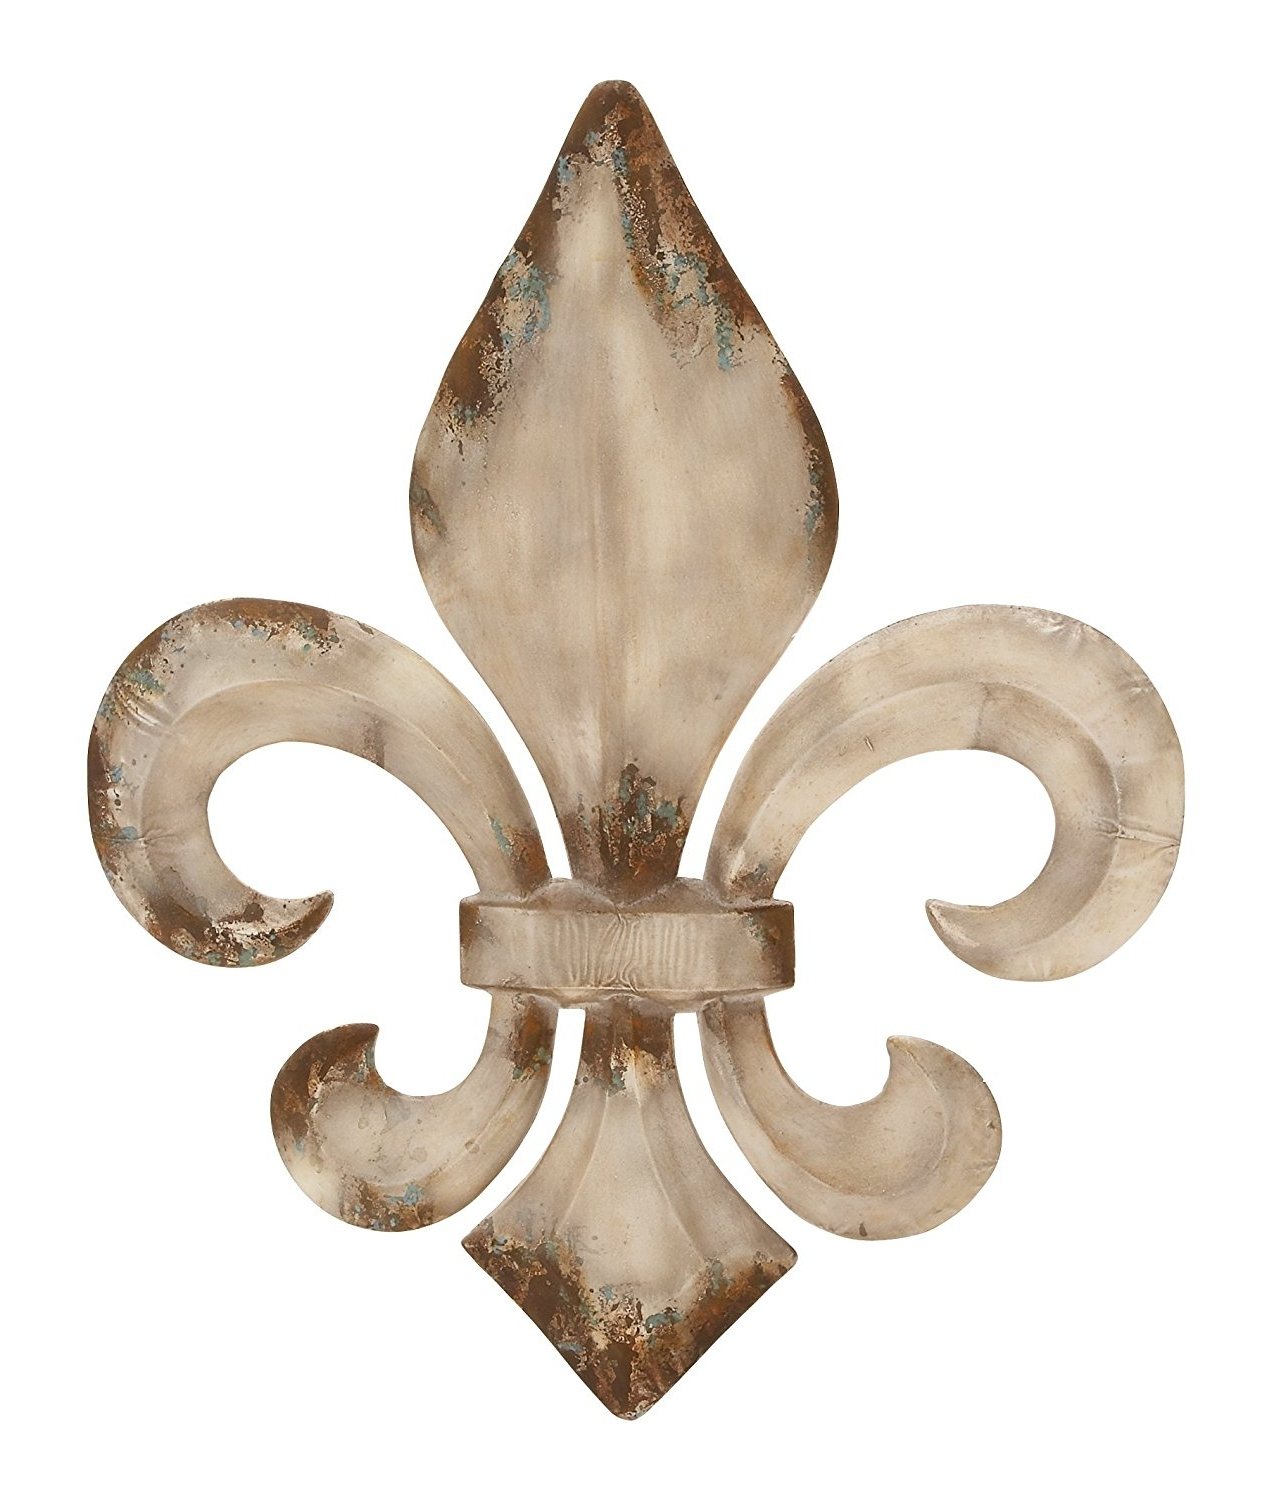 "Best And Newest Amazon: Deco 79 Metal Fleur De Lis Wall Decor, 2530"": Home With Fleur De Lis Metal Wall Art (View 8 of 15)"